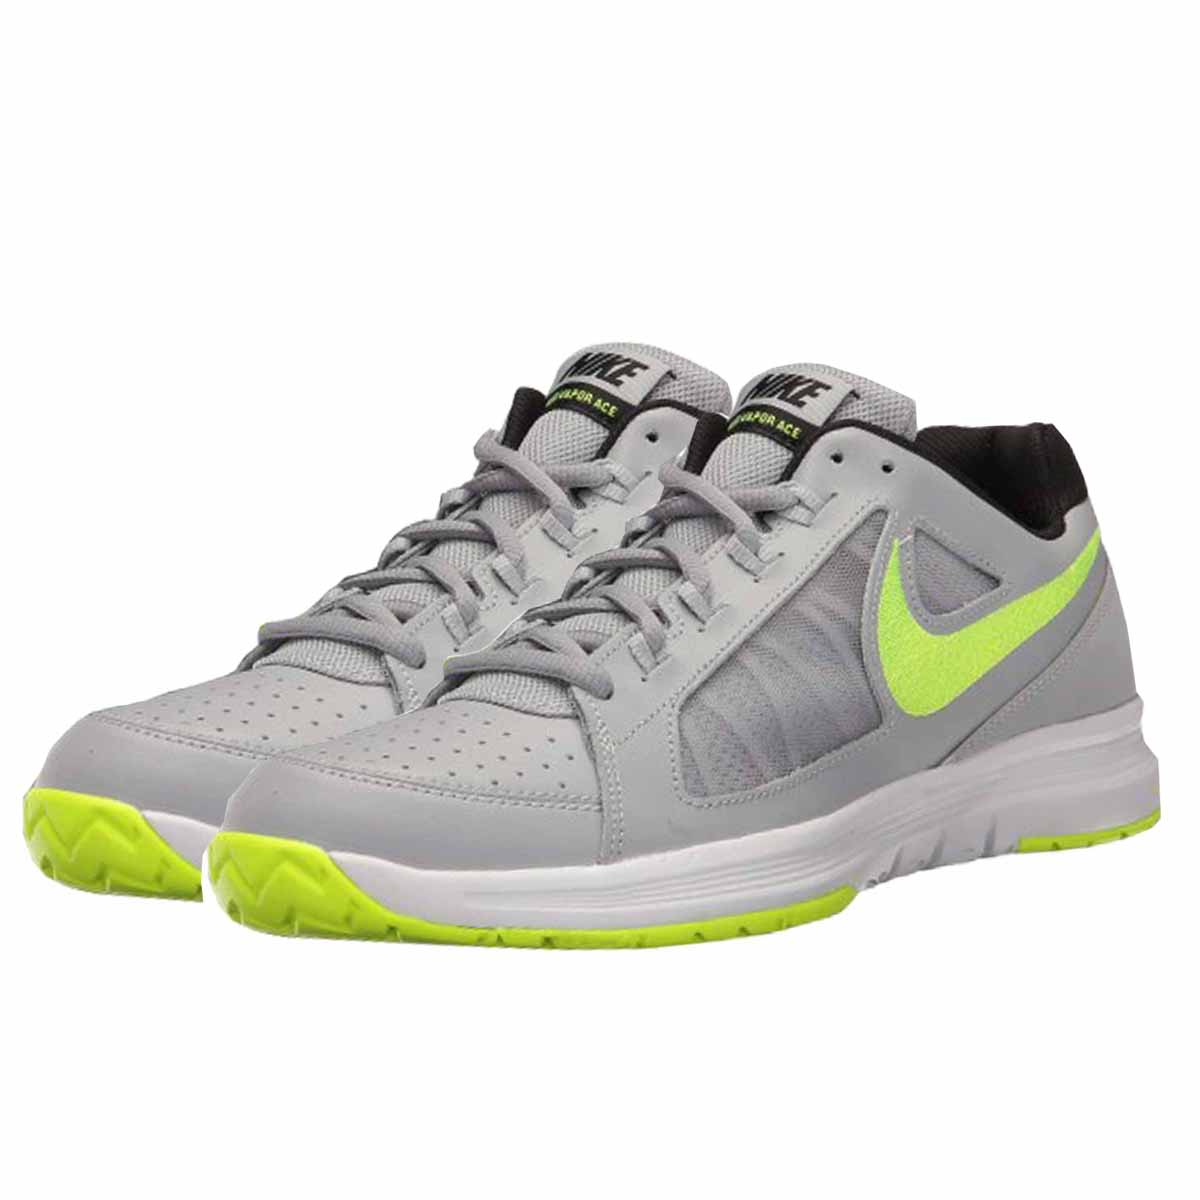 f6d197cb33f7 Buy Nike Air Vapor Ace Tennis Shoes Online India